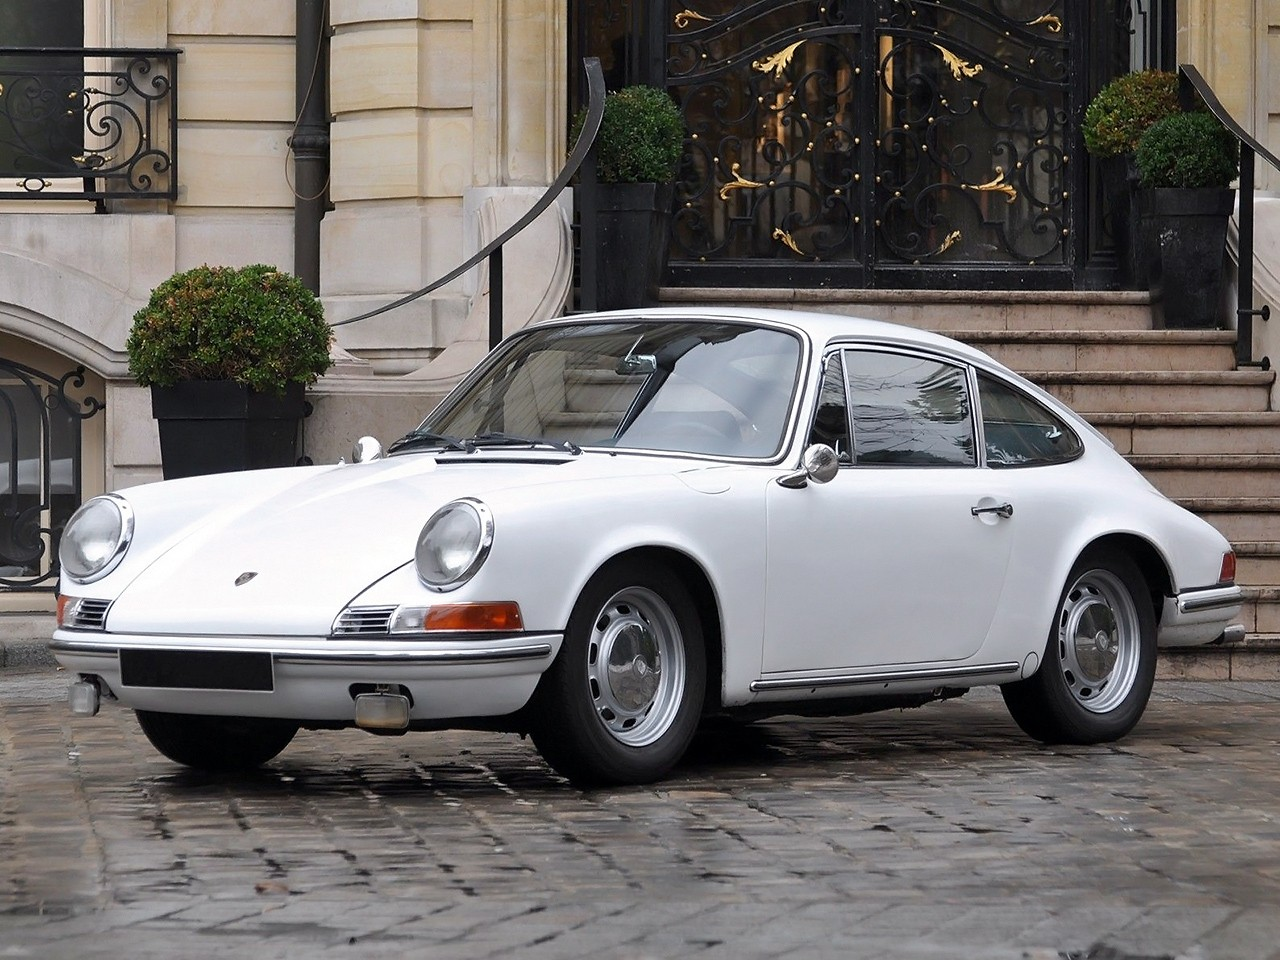 Porsche 912 901 1965 on evolution engine